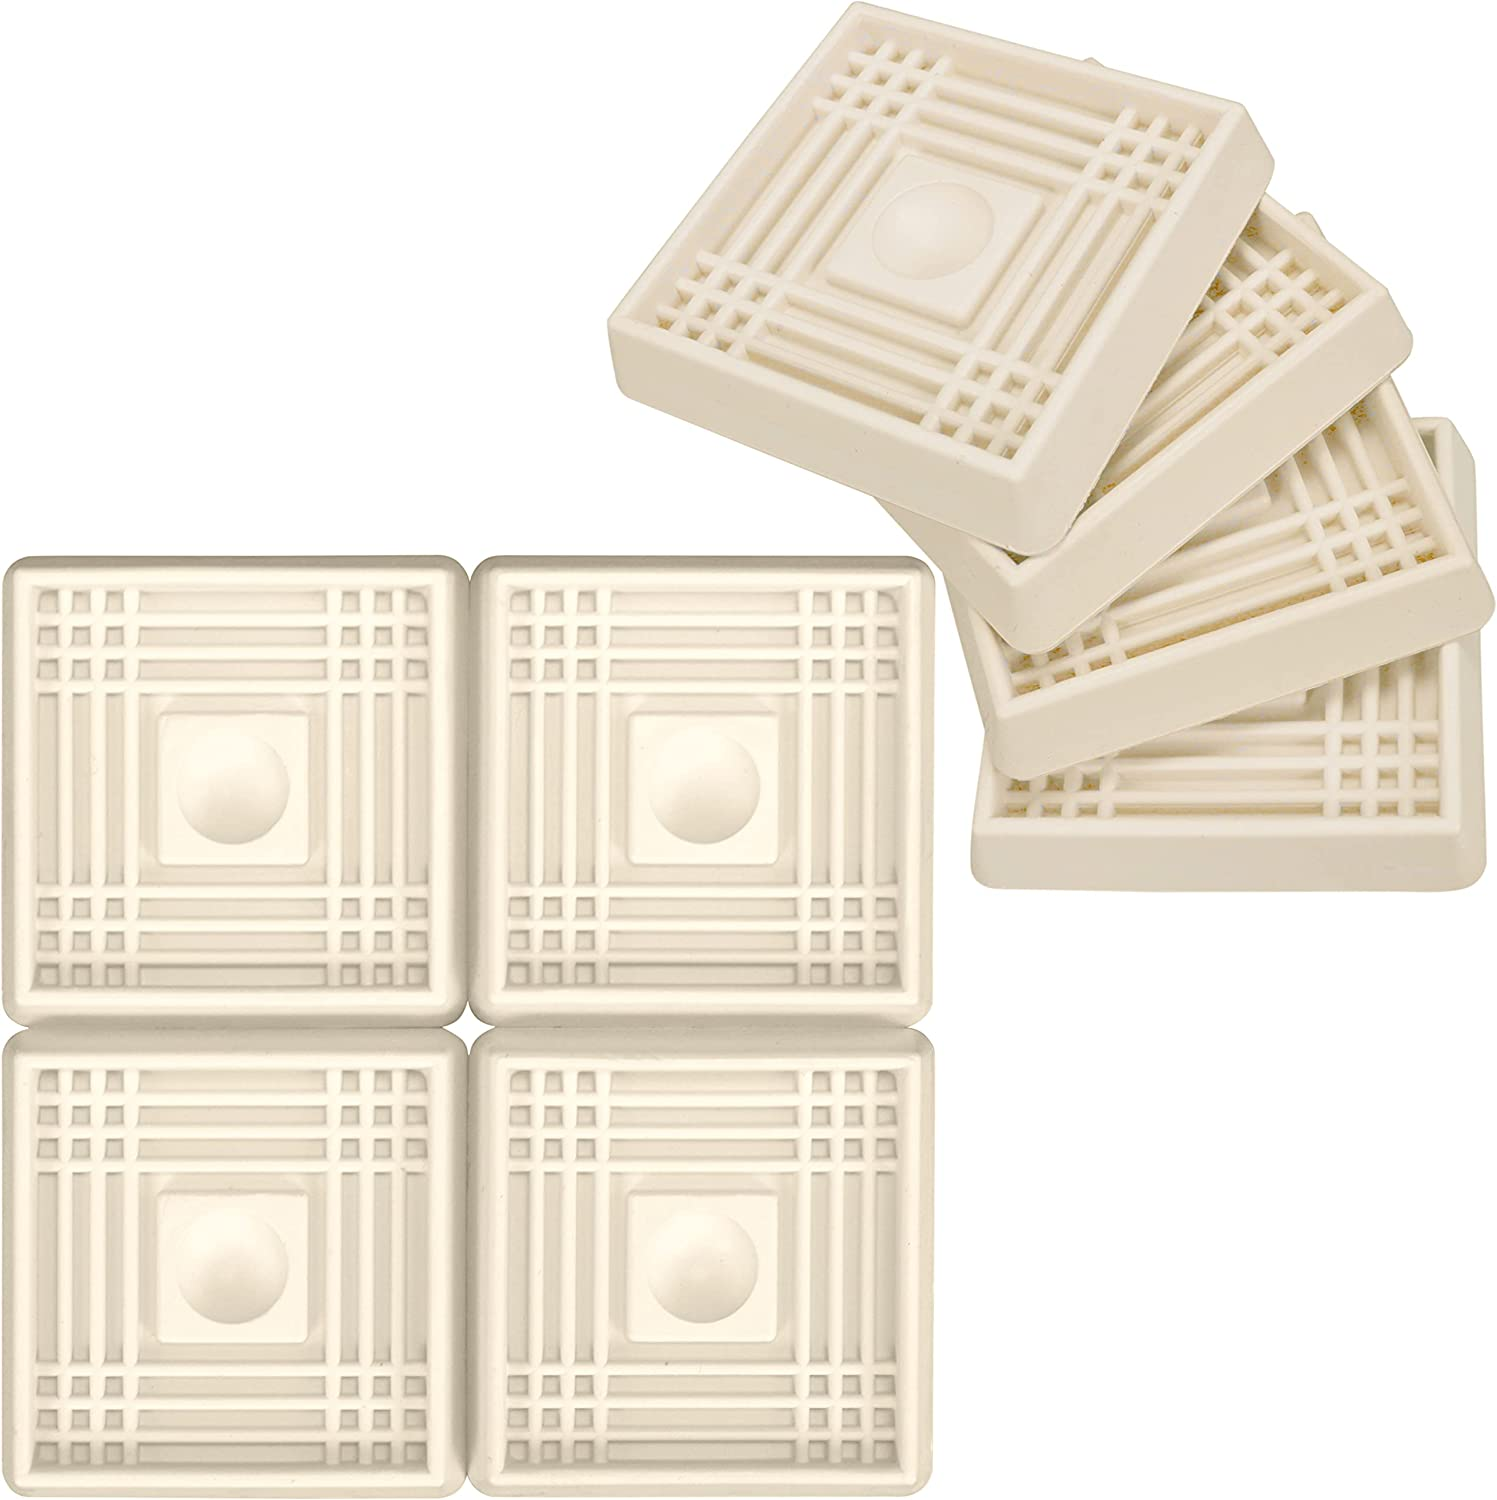 Harrier Hardware Rubber Furniture Pad Caster Cups, 2-Inch Square, Almond, 8-Pack